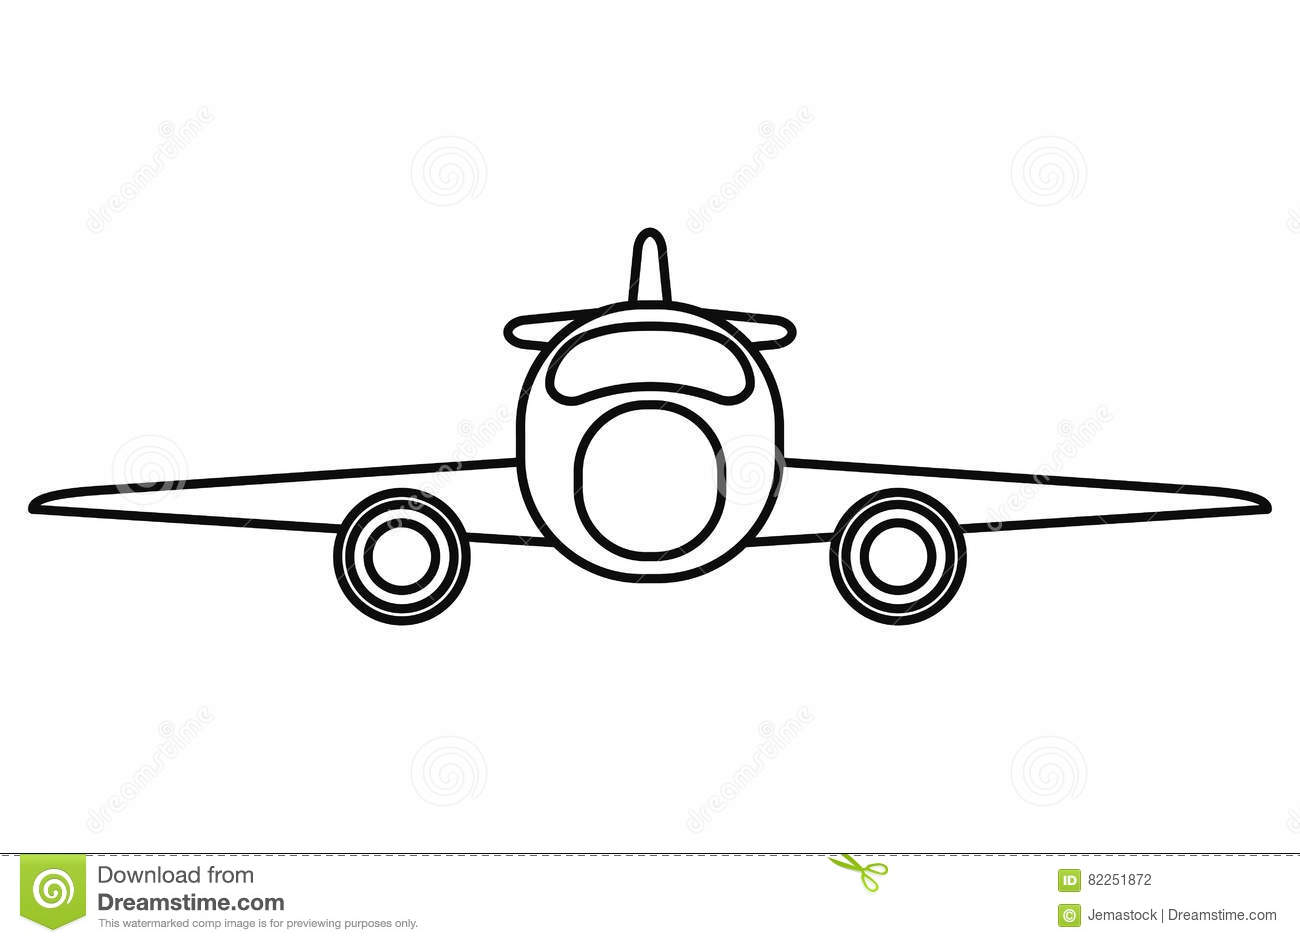 4 Engine Transport Plane